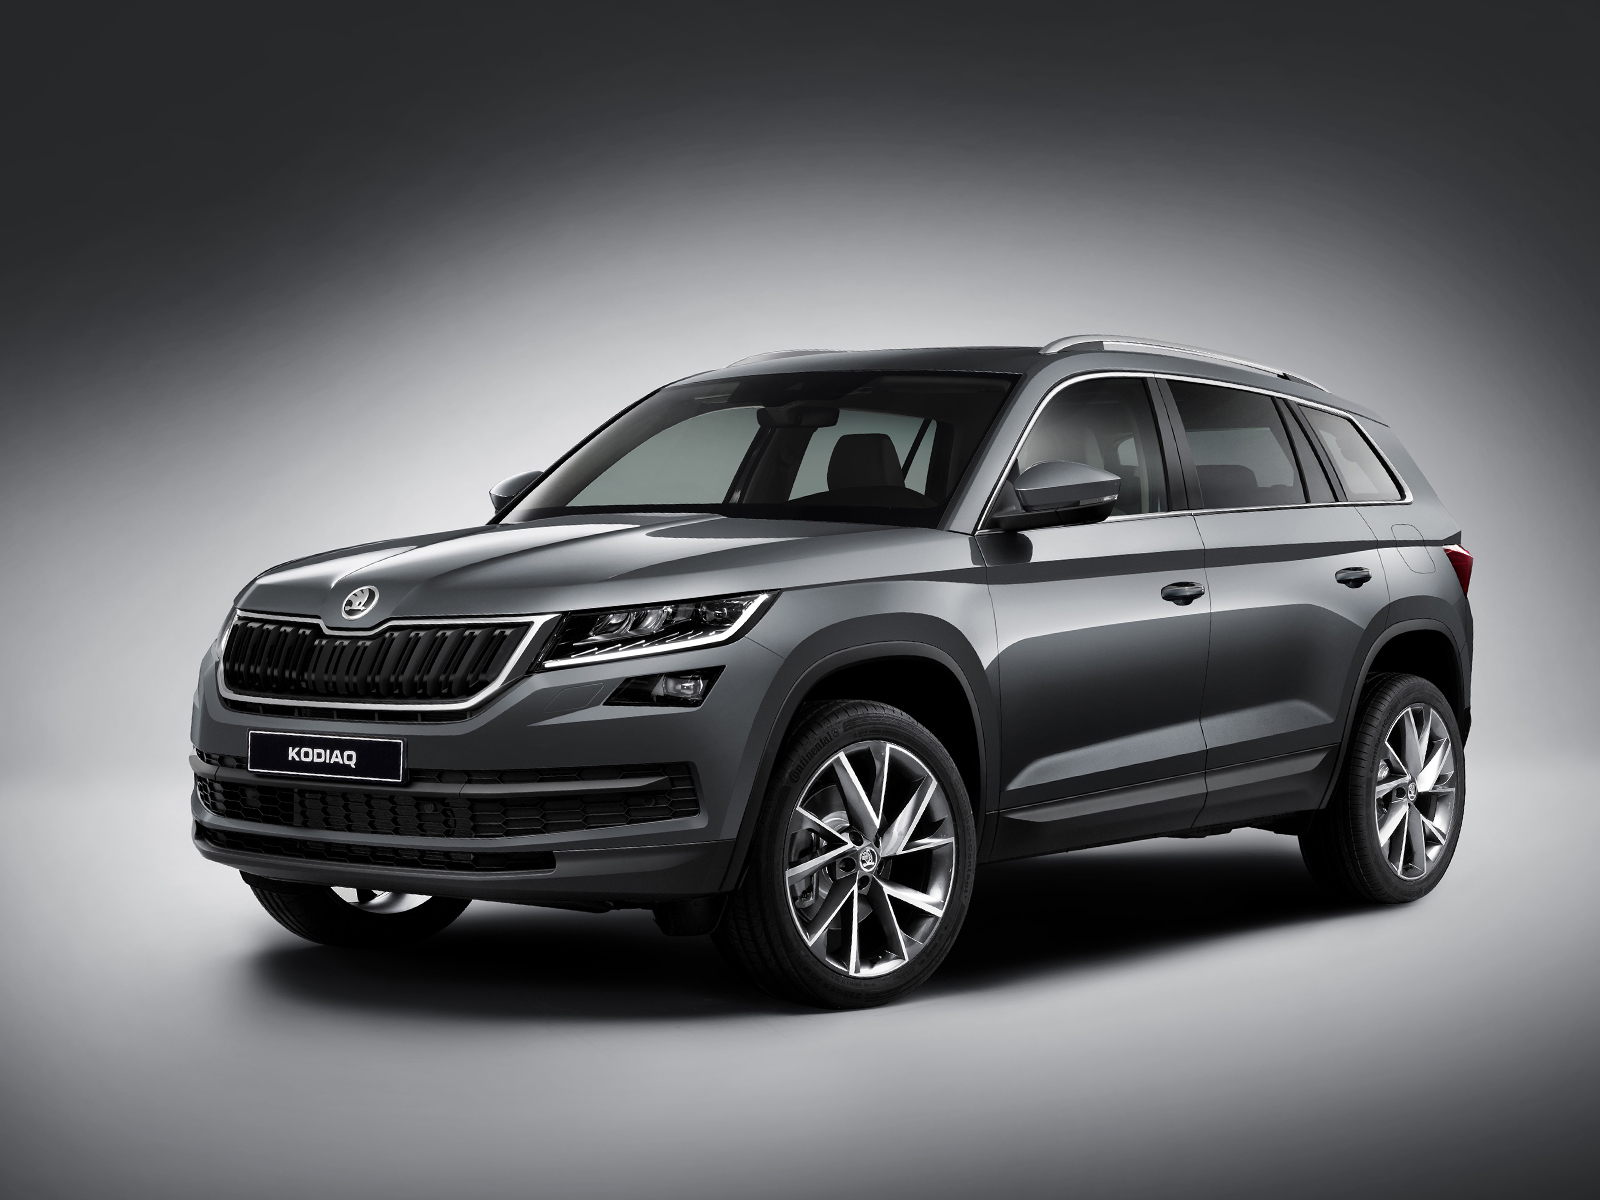 Skoda Kodiaq 2016 Wallpapers Images Photos Pictures Backgrounds